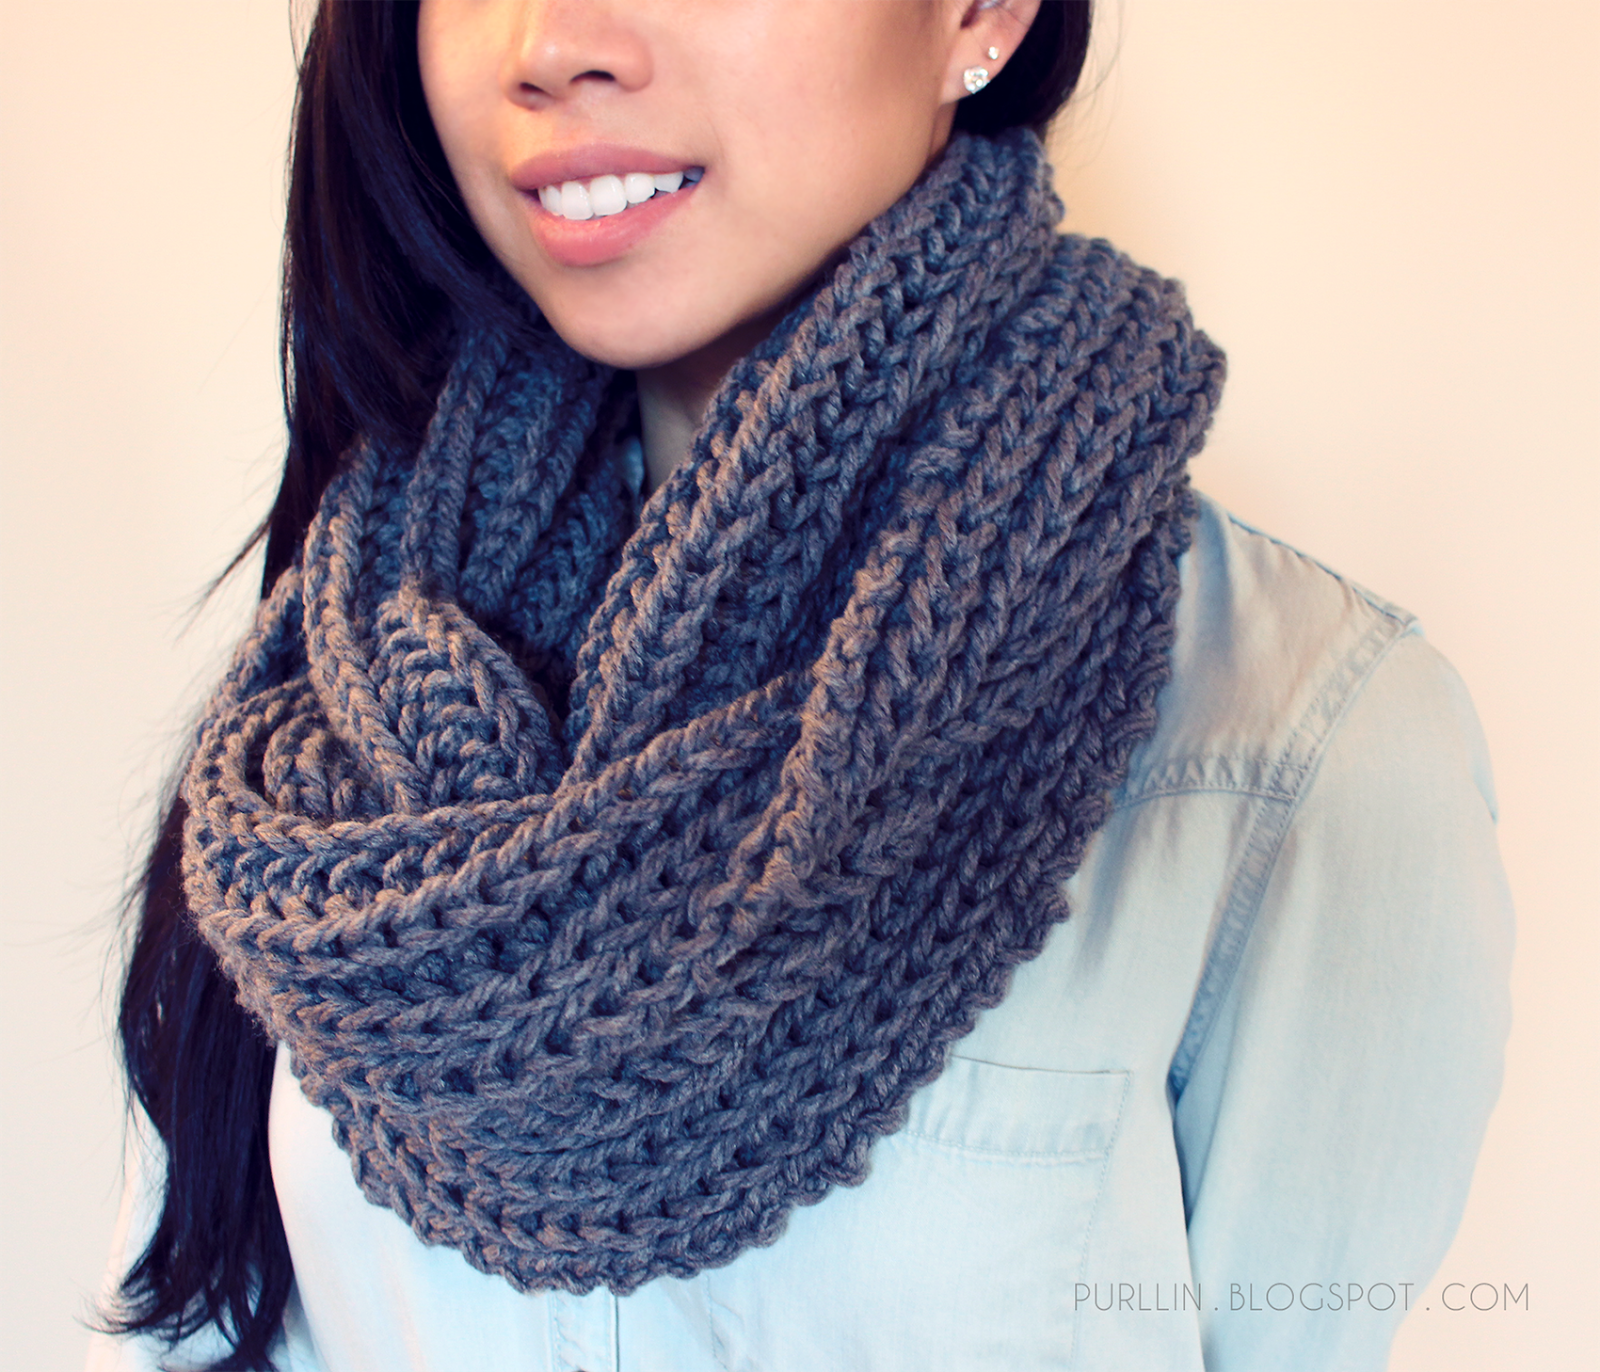 Knitting Circle Near Me : Purllin textured november infinity scarf free pattern